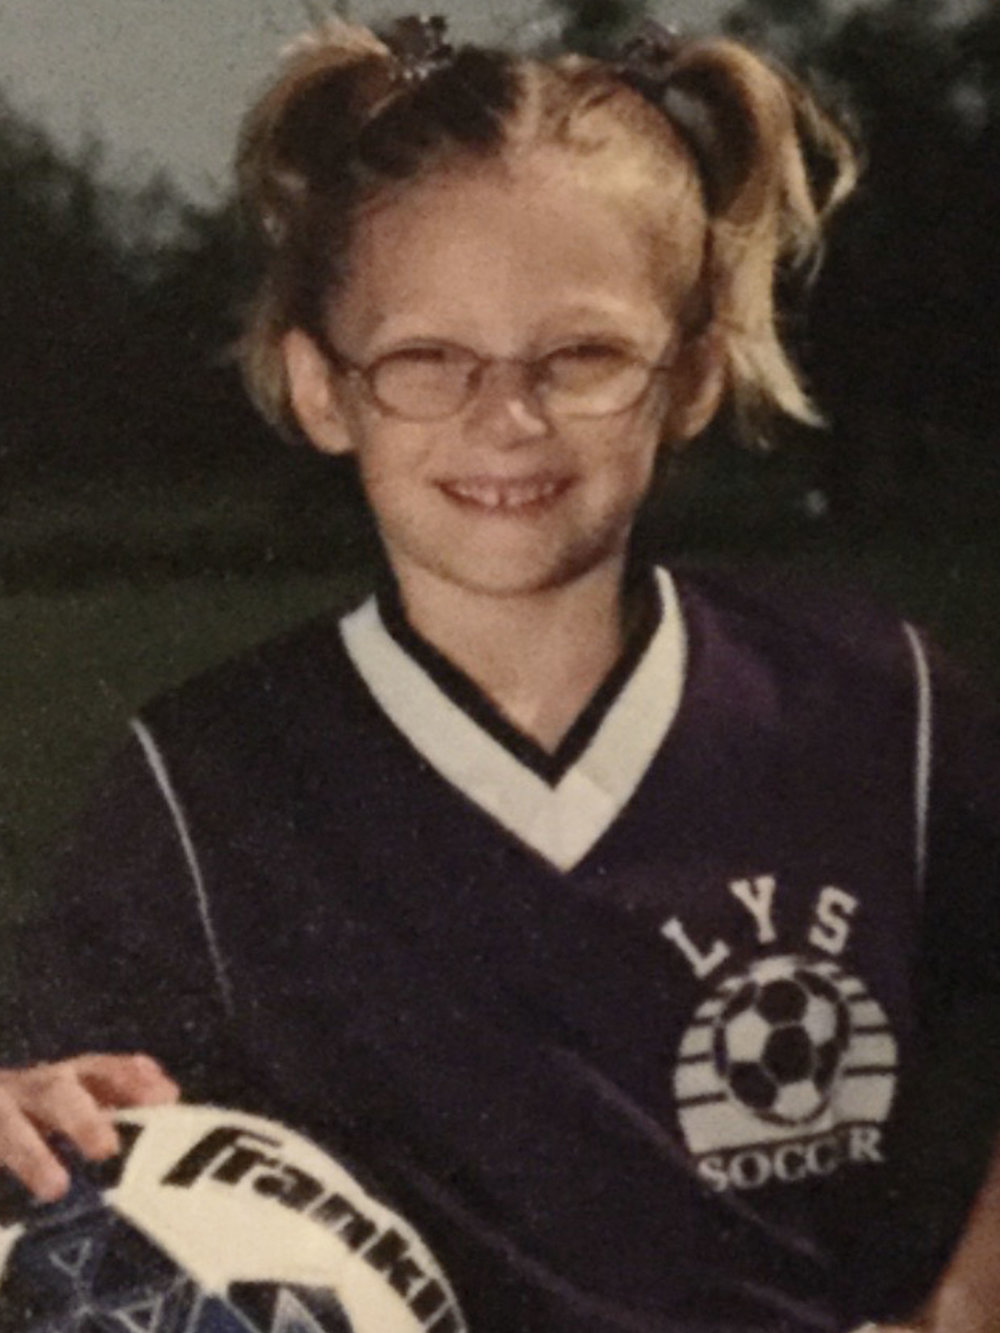 Good bye glasses - Because my glasses kept fogging up in soccer, it was time for my 5 yr old self to get contacts. To prove I was ready, everyday for two weeks the doctor had me come to the clinic to practice taking my contacts in and out.